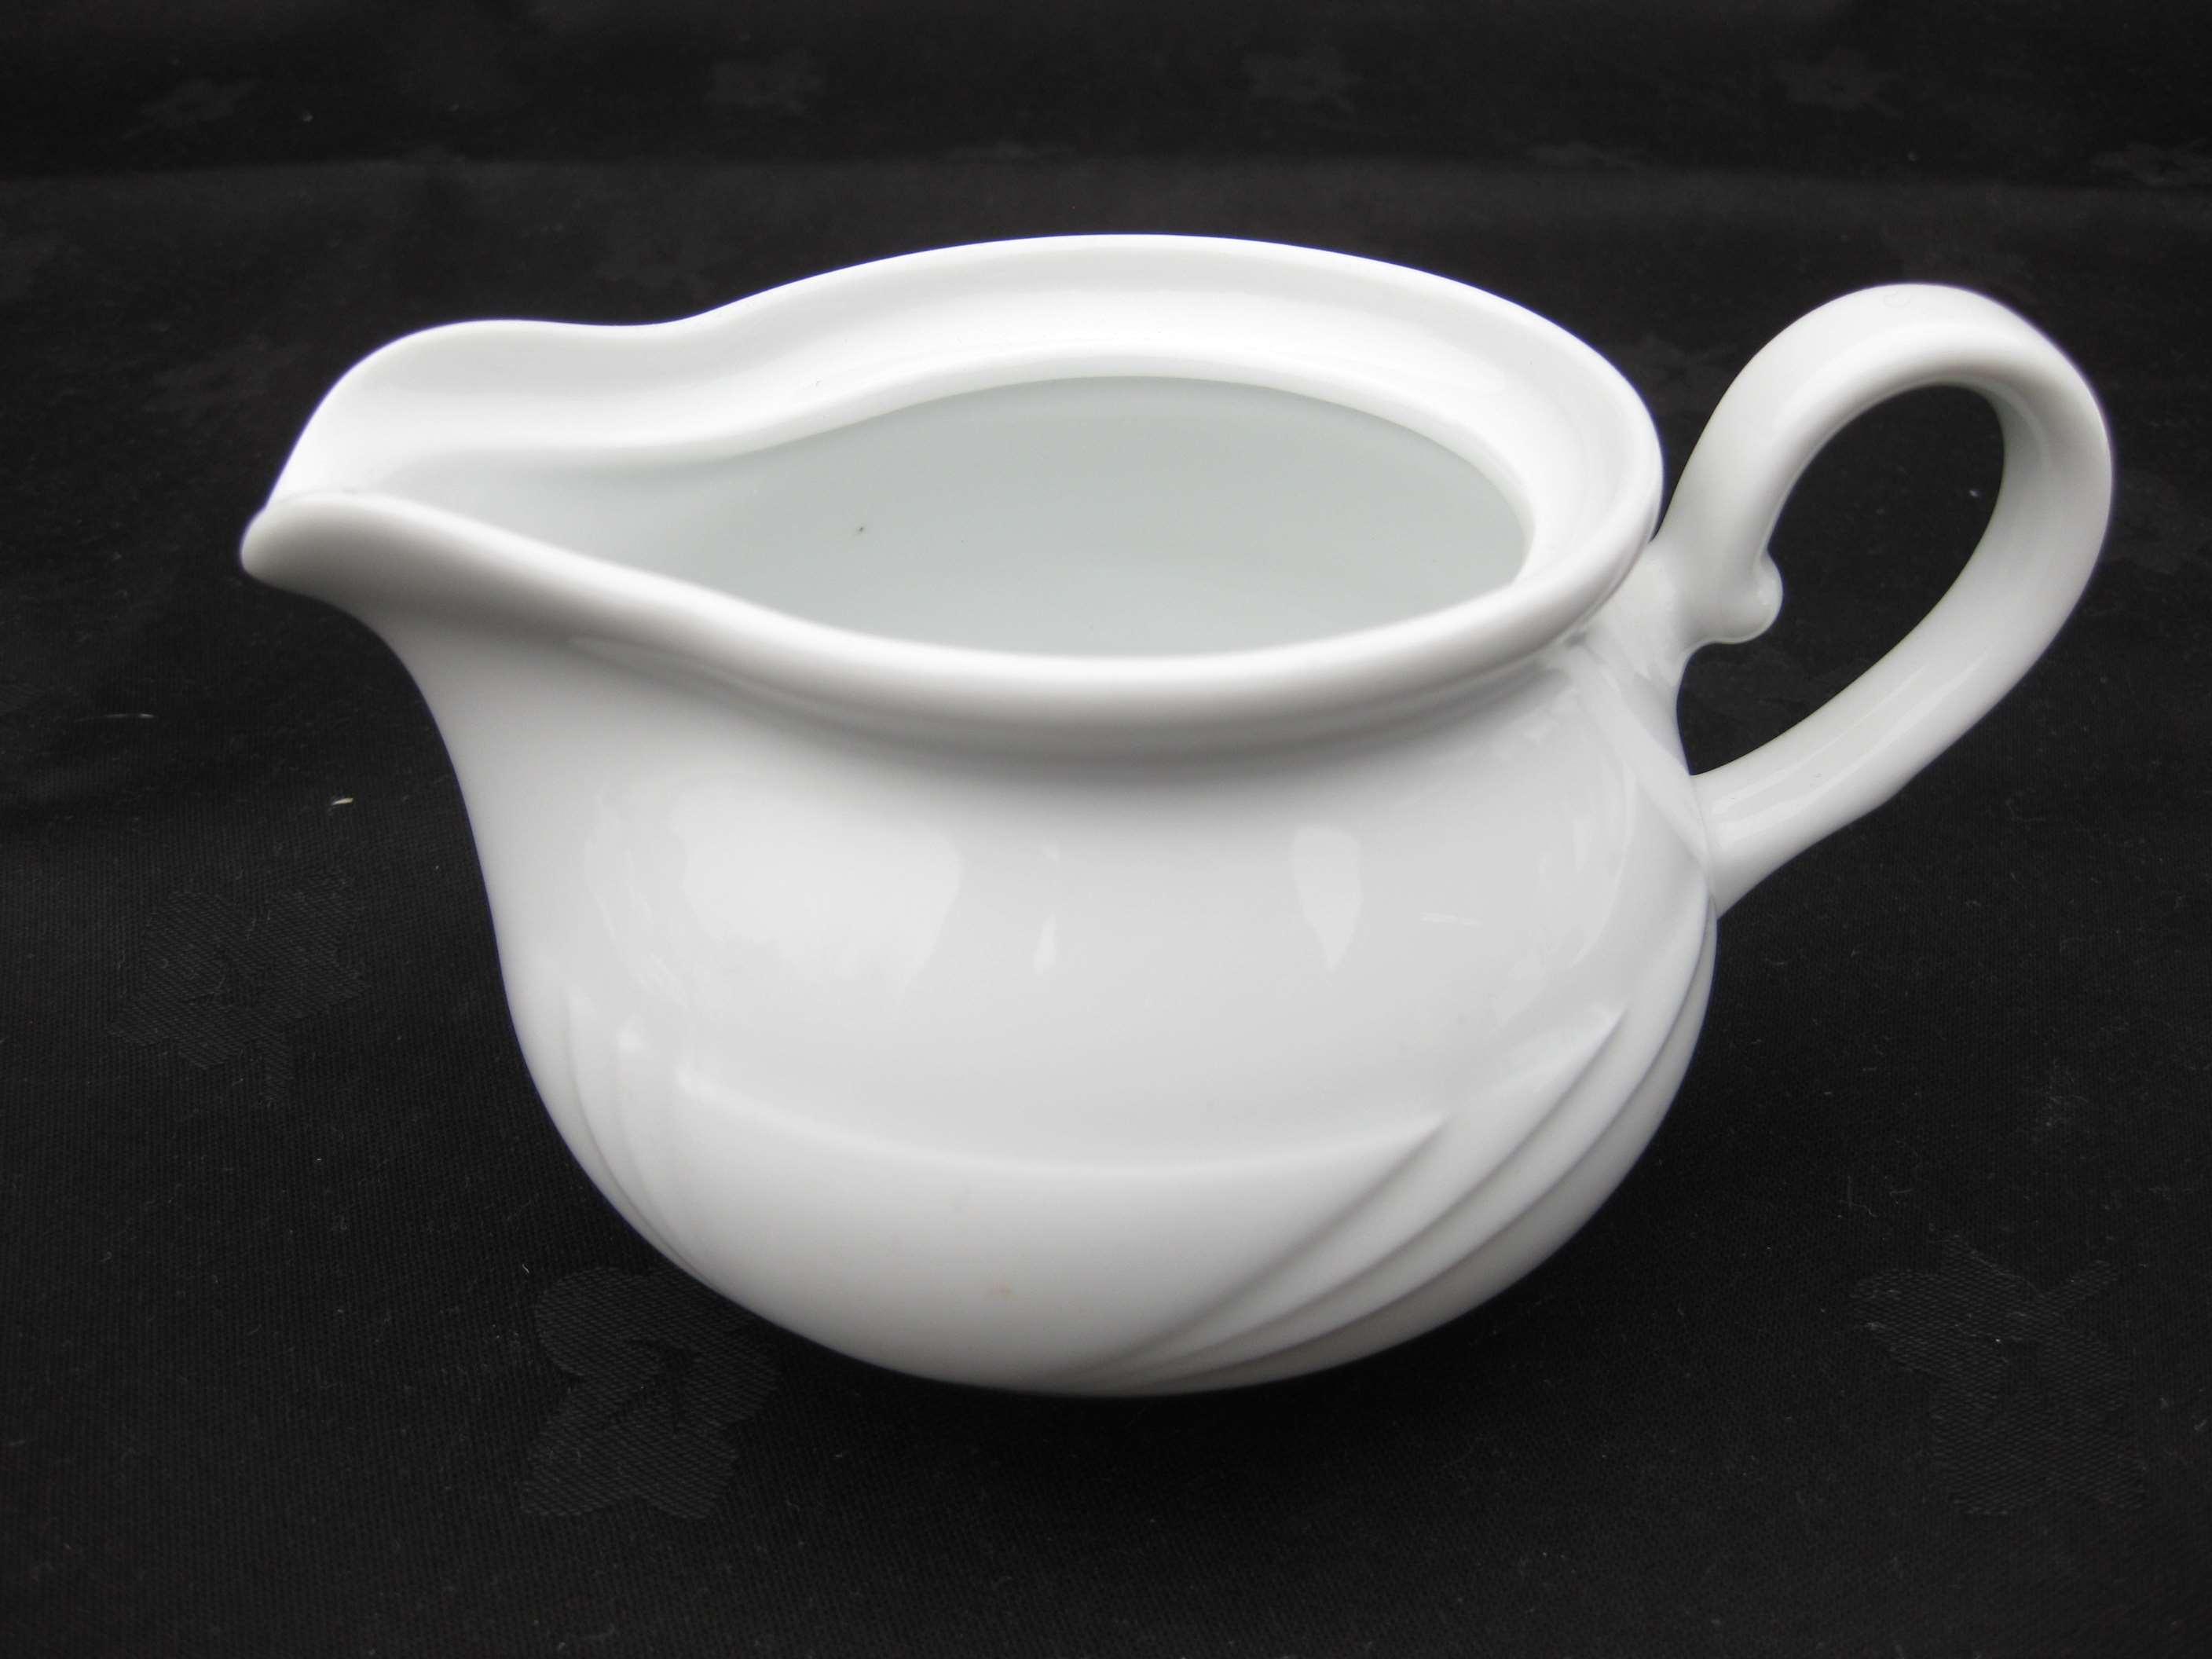 Lubiana Small Sauce Boat image